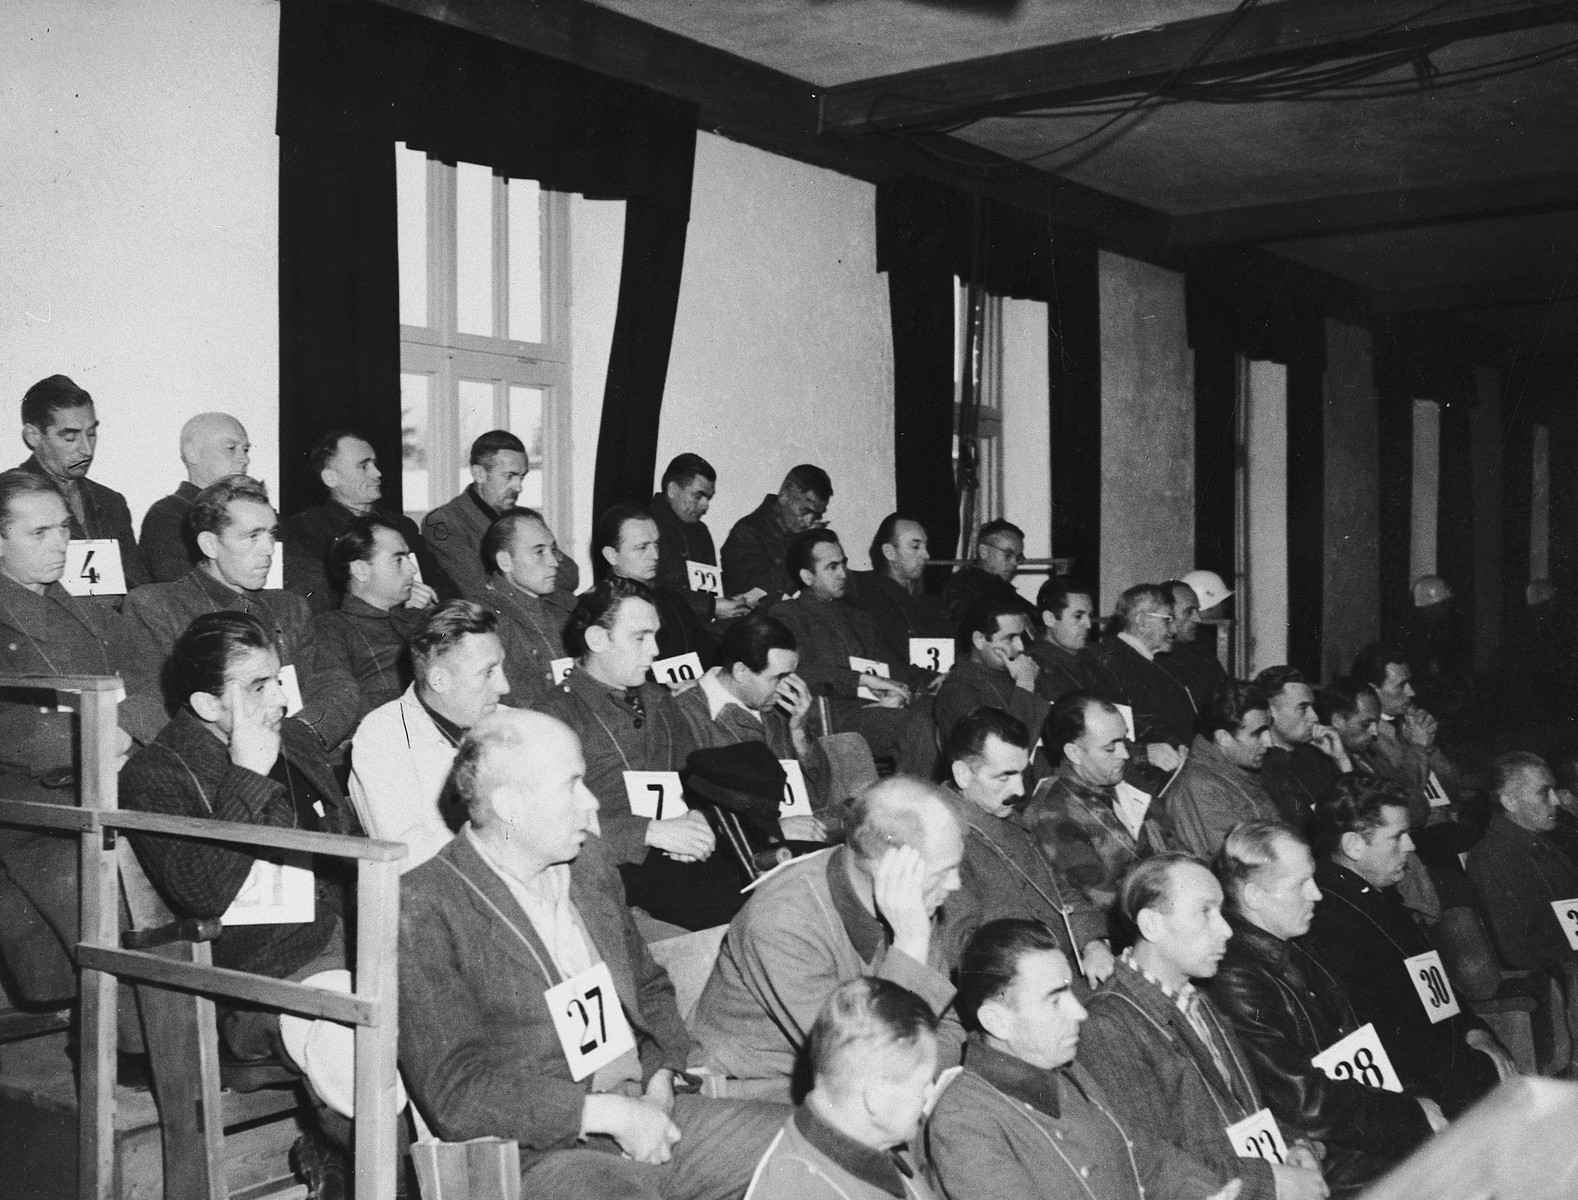 View of the defendants in the Dachau trial wearing identifying number tags seated in the dock.